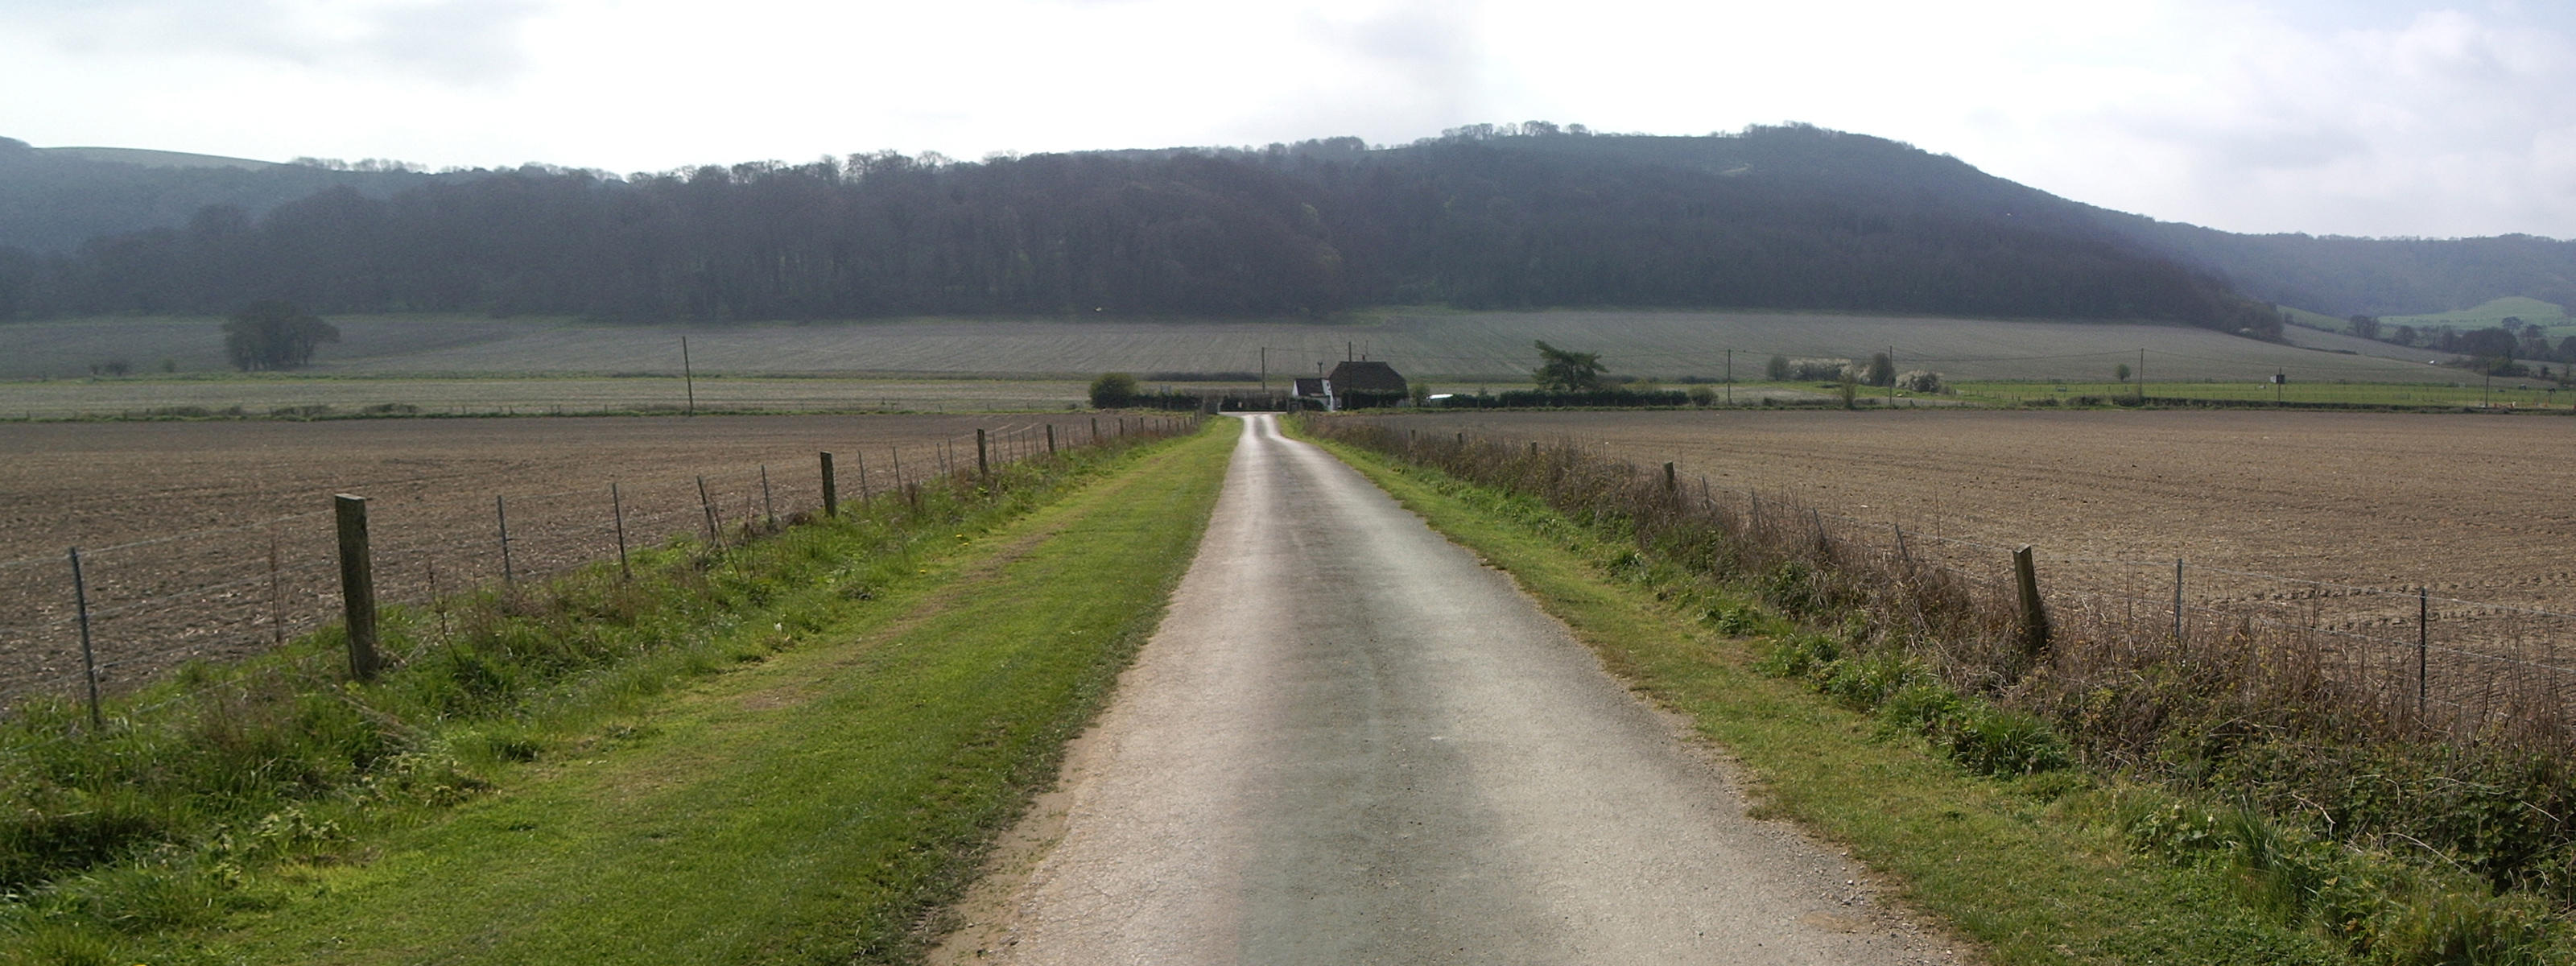 South Downs 2 by asm495